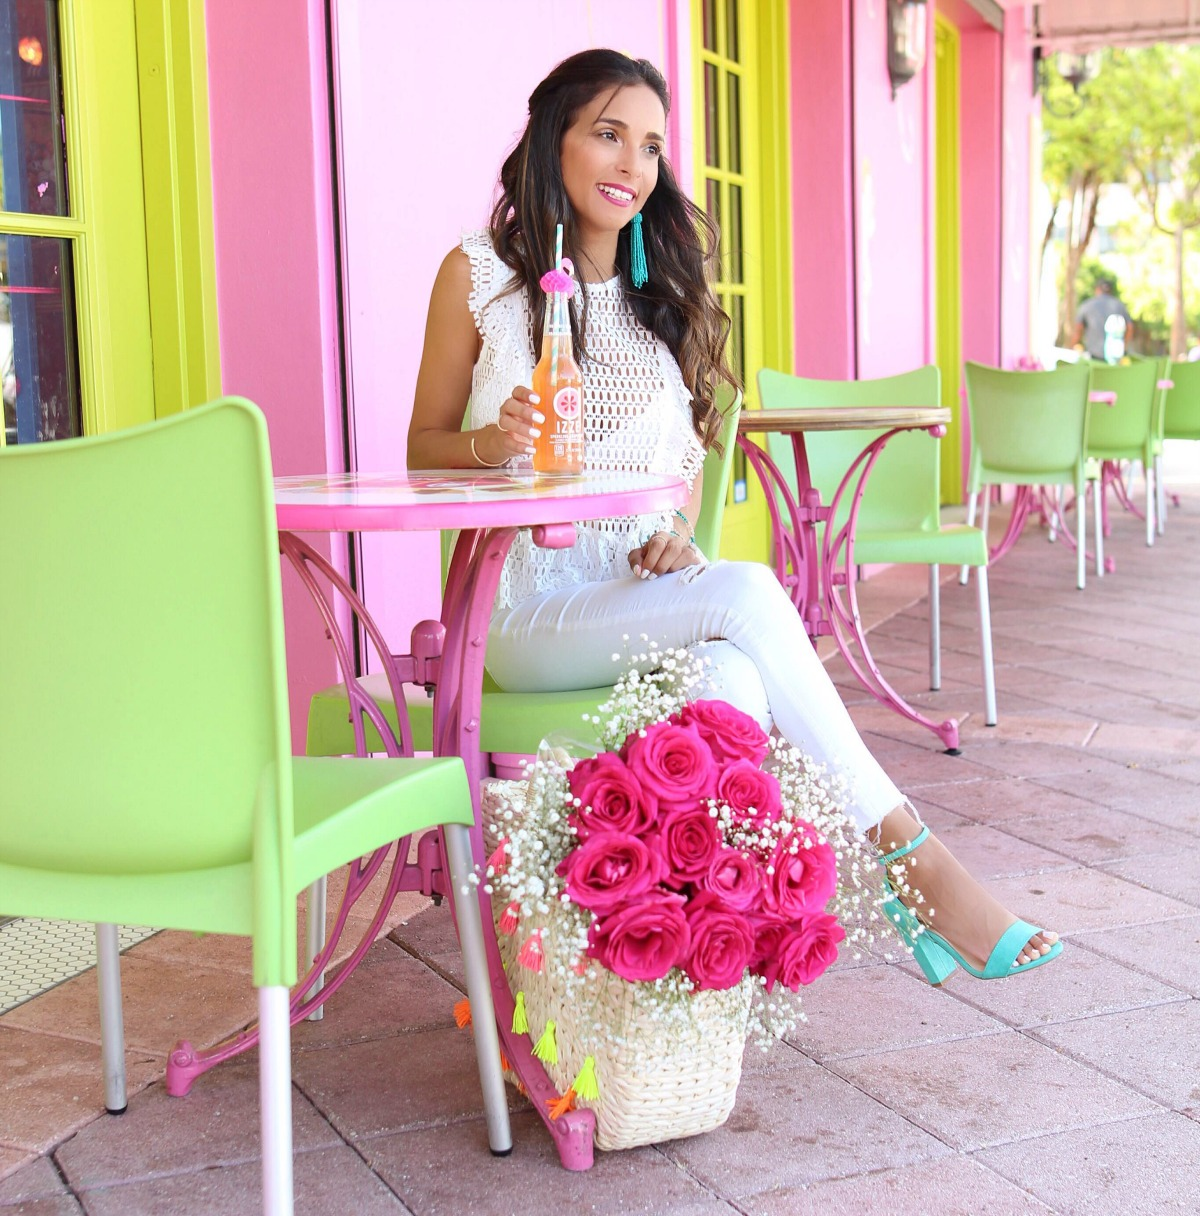 White peplum eyelet top with white jeans and a pop of color for accessories